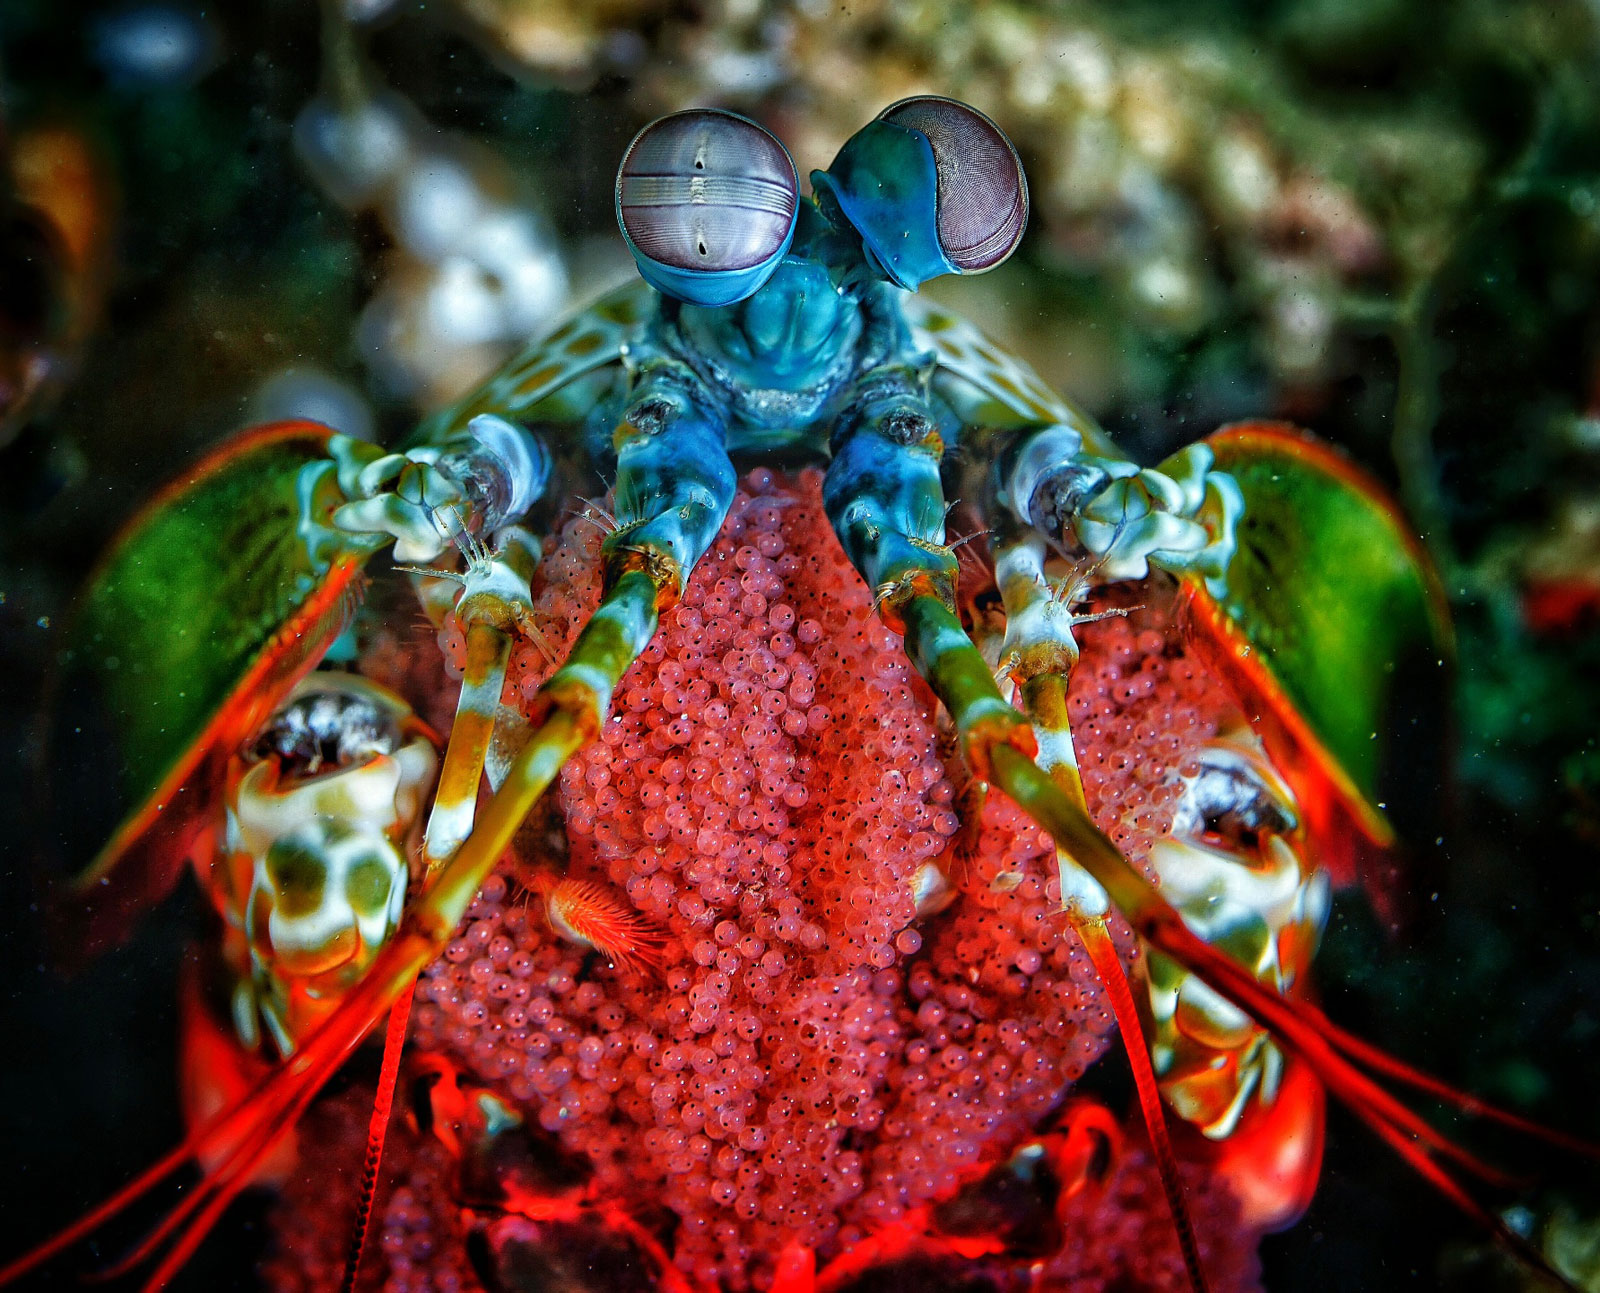 Mantis Shrimp with Eggs and Eyes, photo: Ebehard Saft (April 2017)